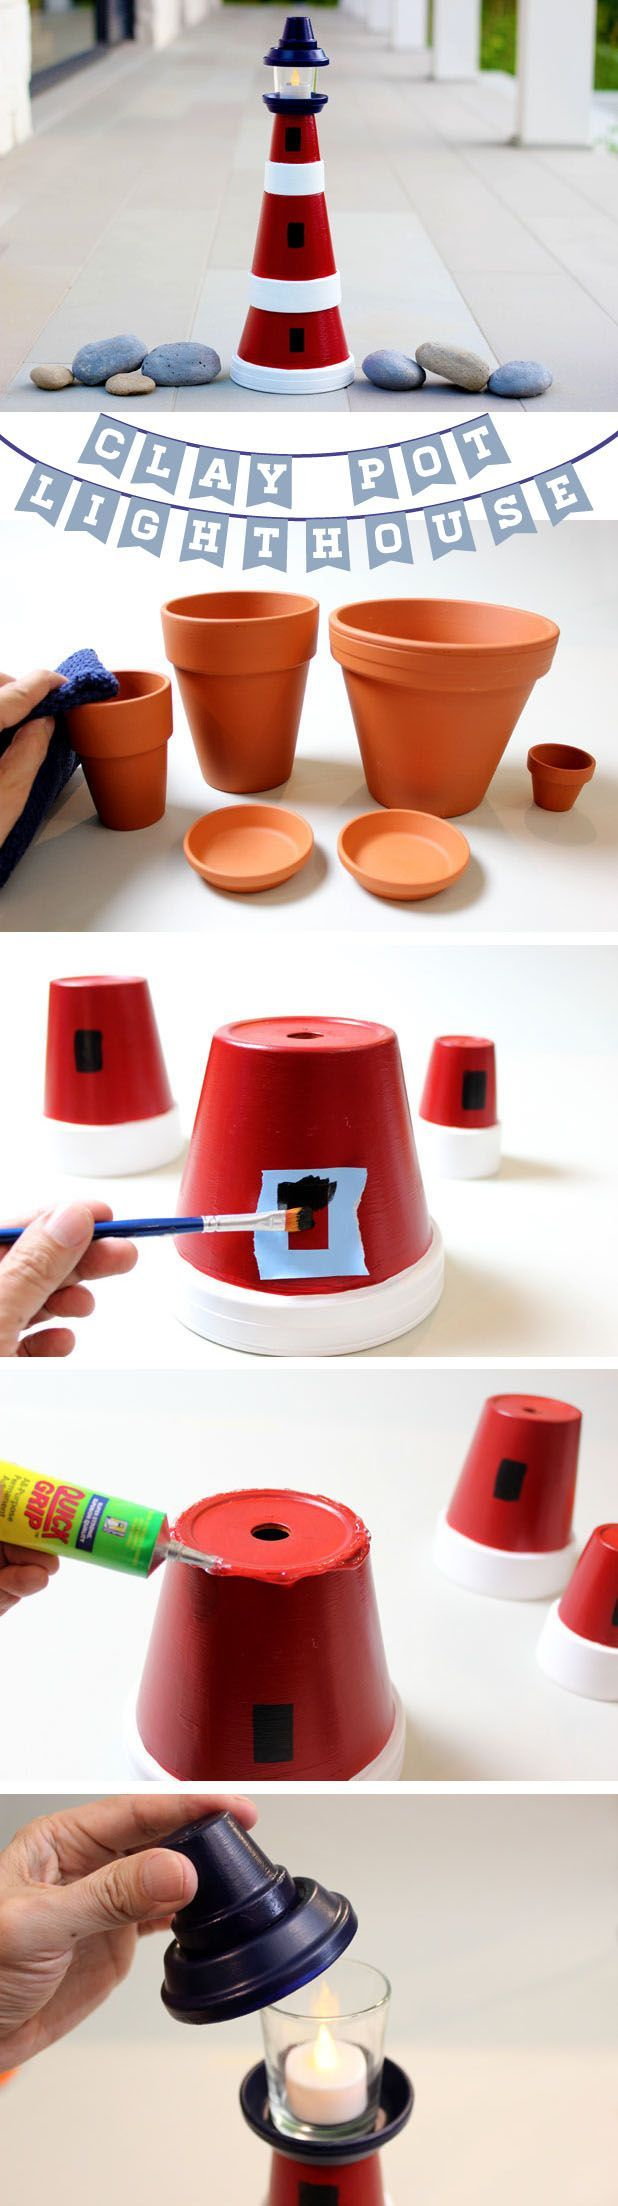 Go nautical this spring and summer with this easy to follow clay pot lighthouse tutorial! Take varying sizes of clay pots, paint them, and feature a cute lantern on top! A simple way to light up your garden or porch! www.ehow.com/...